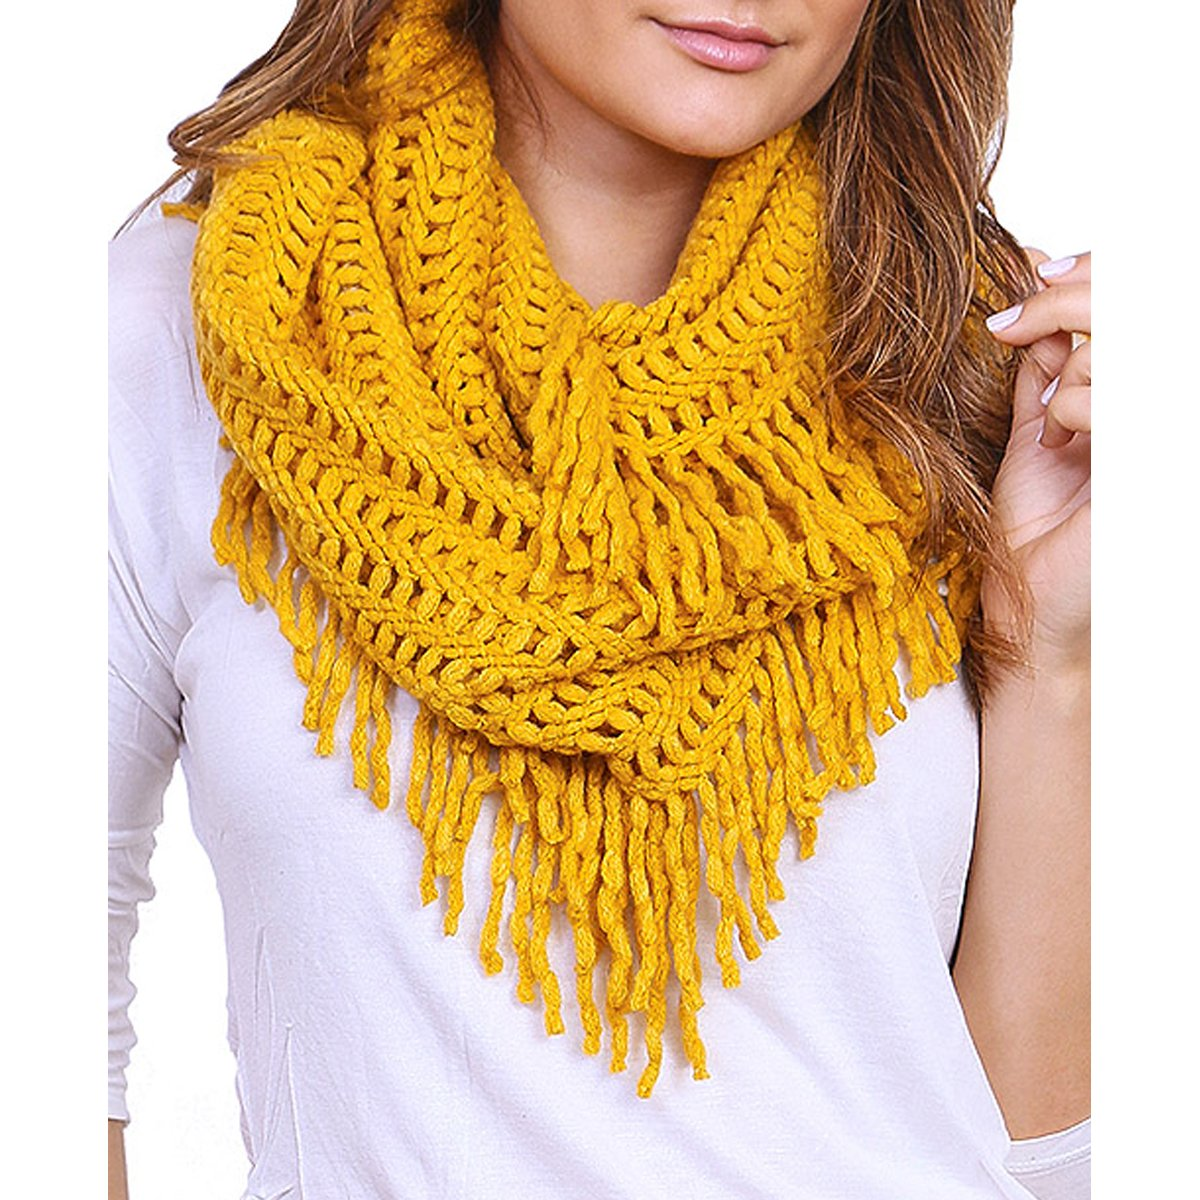 Fringe Knitted Crochet Cutout Infinity Scarf Mustard Color